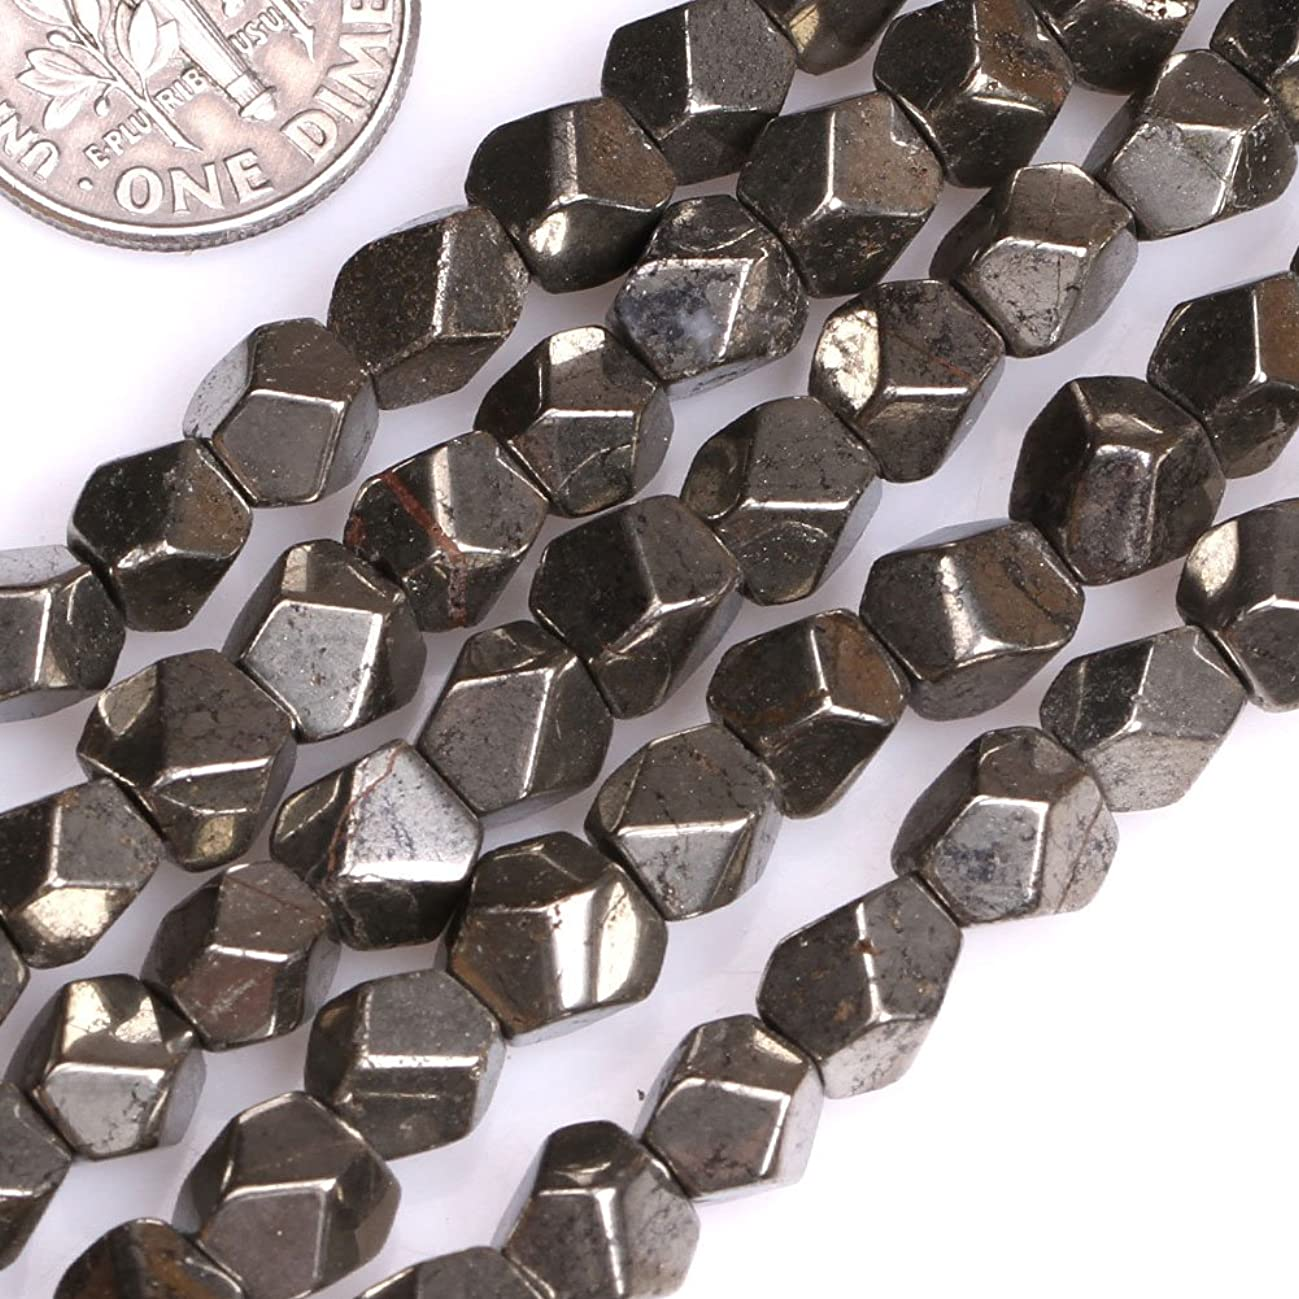 GEM-inside Pyrite Gemstone Loose Beads 10mm Faceted Silver Gray Energy Stone Power Beads For Jewelry Making 15